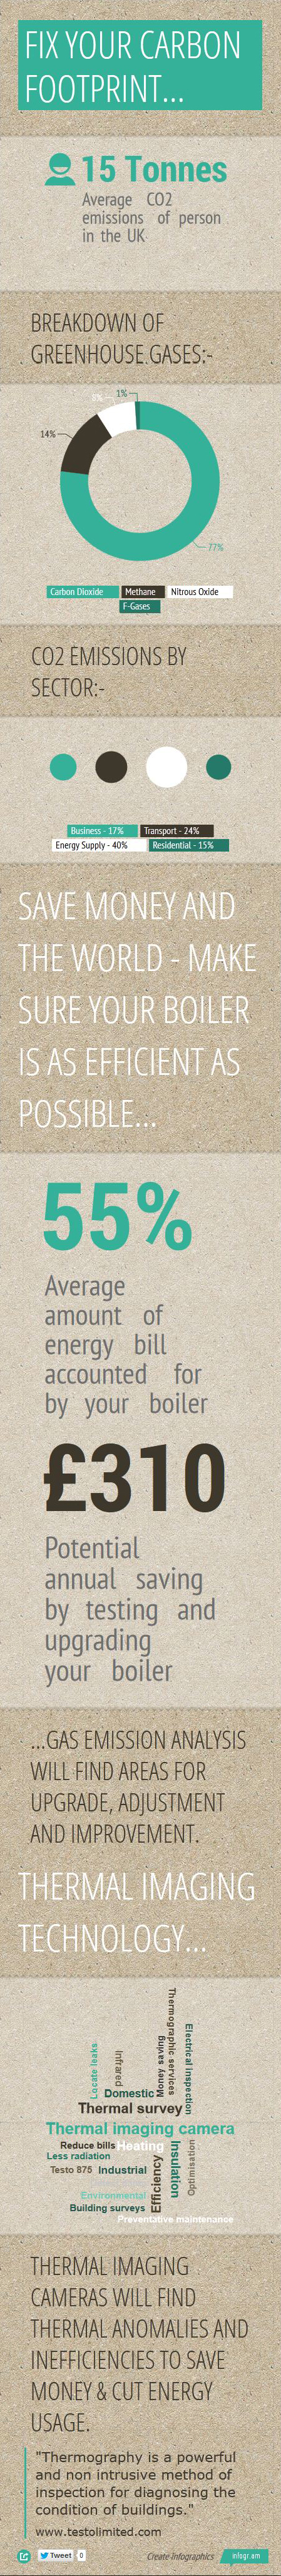 INFOGRAPHIC - Carbon Footprint